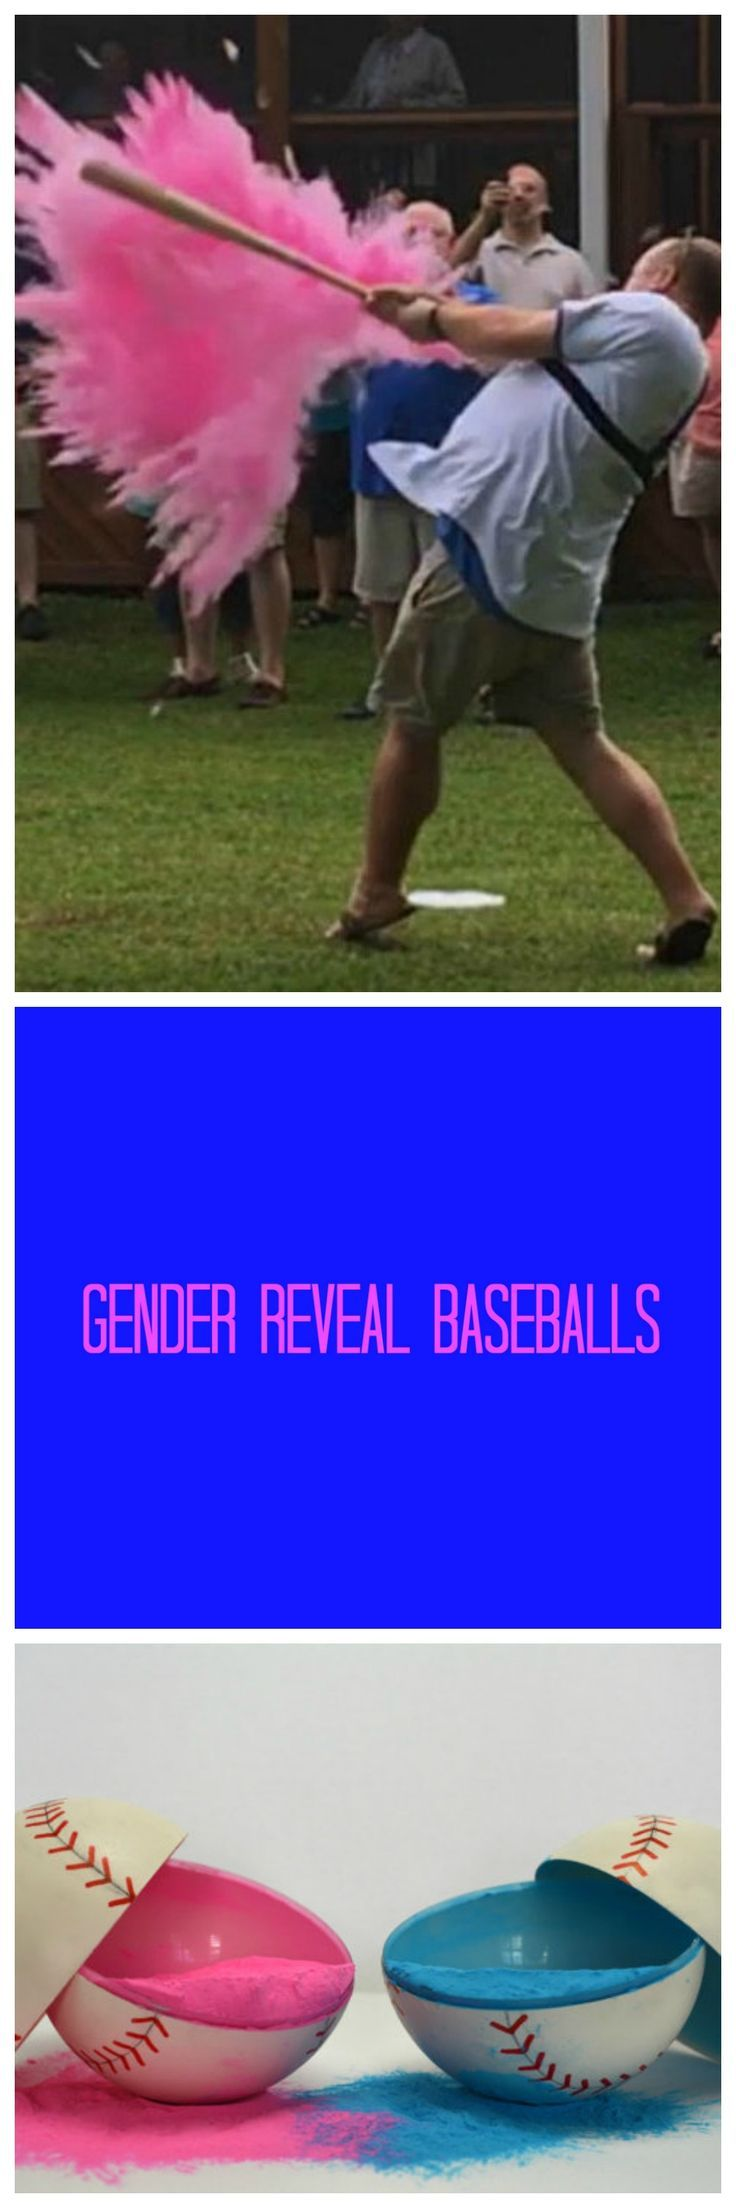 Gender Reveal idea! These are the original Gender reveal balls as seen on TV shows including the Today Show and ESPN Sports Center, and used by professional baseball players, including the Braves and Kansas City Royals. aff